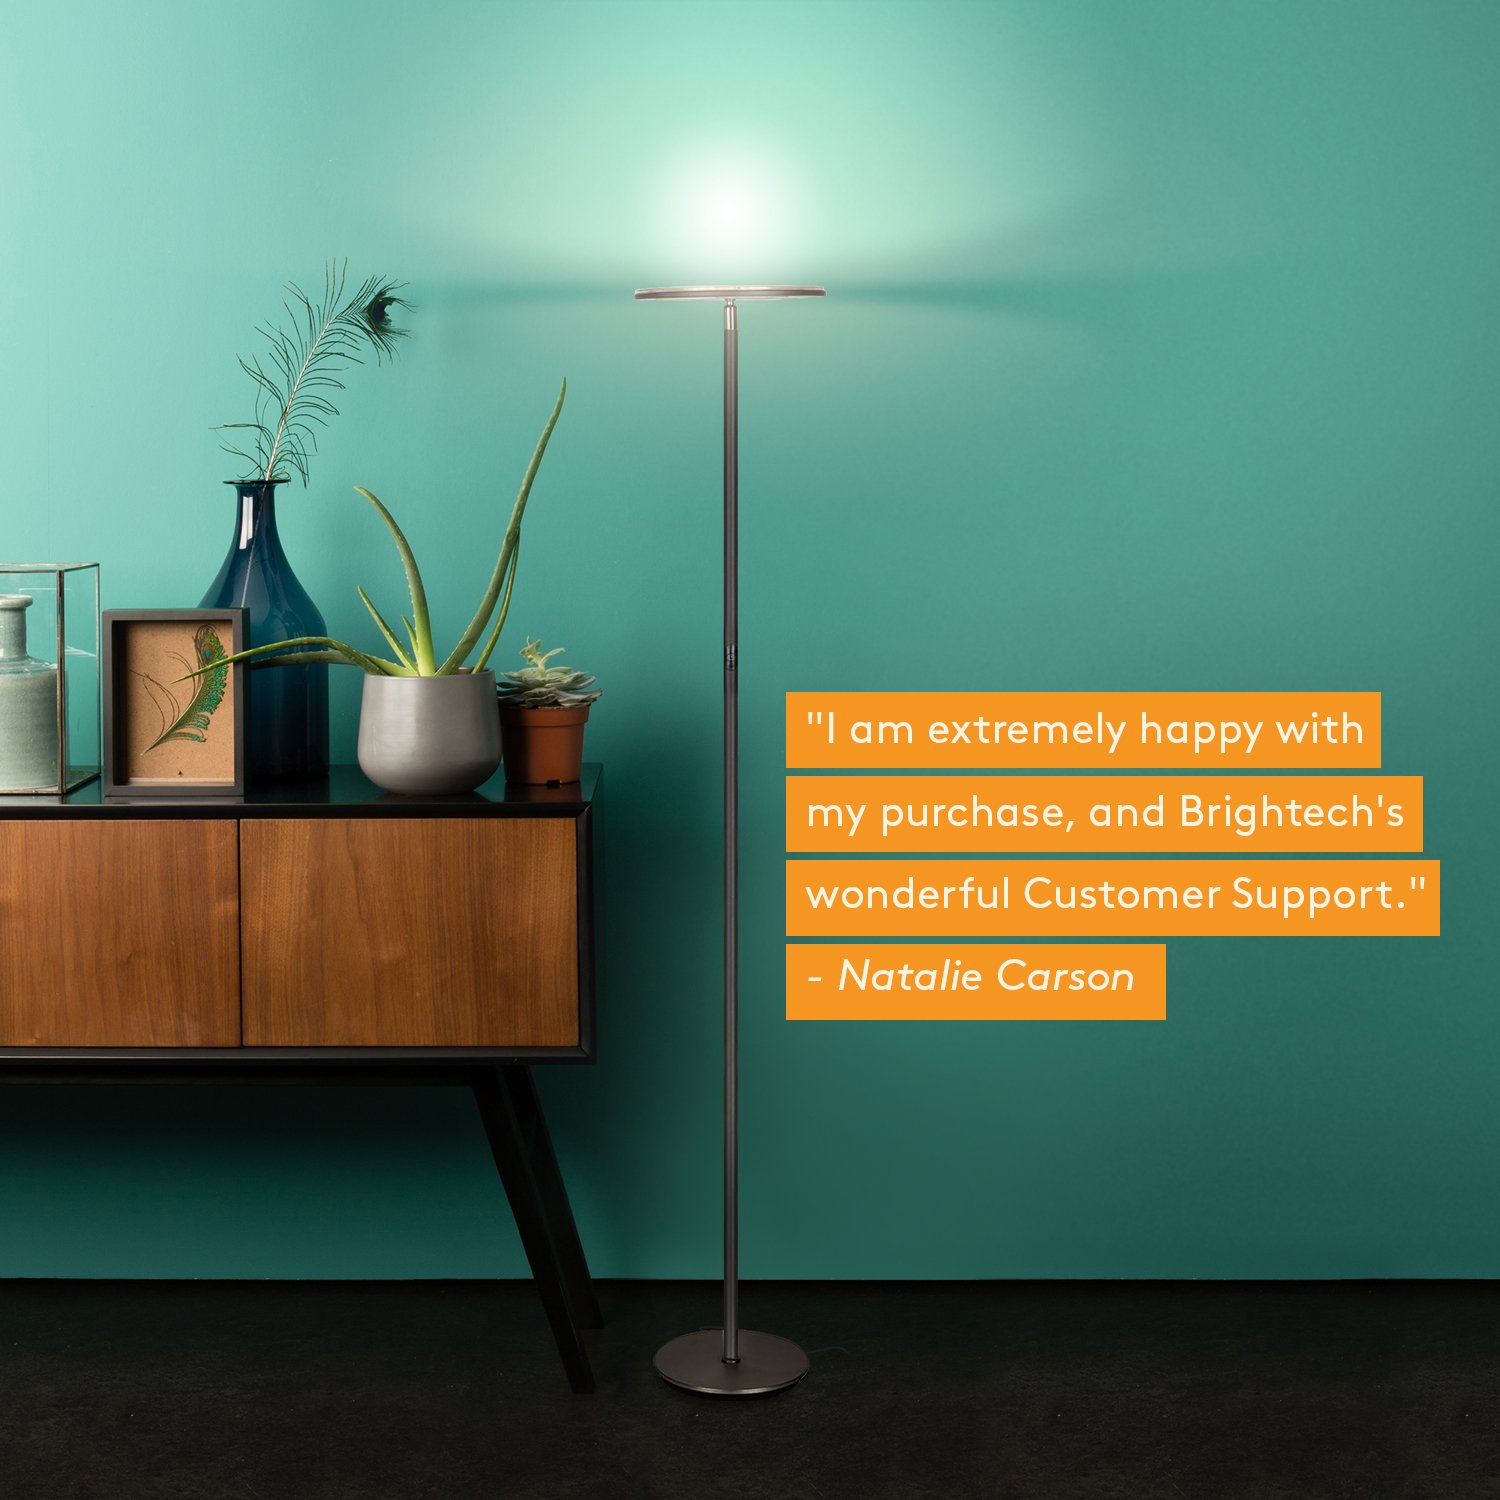 Brightech Sky LED Torchiere Super Bright Floor Lamp - Tall Standing Modern Pole Light for Living Rooms & Offices - Dimmable Uplight for Reading Books in Your Bedroom etc - Dark Bronze by Brightech (Image #9)